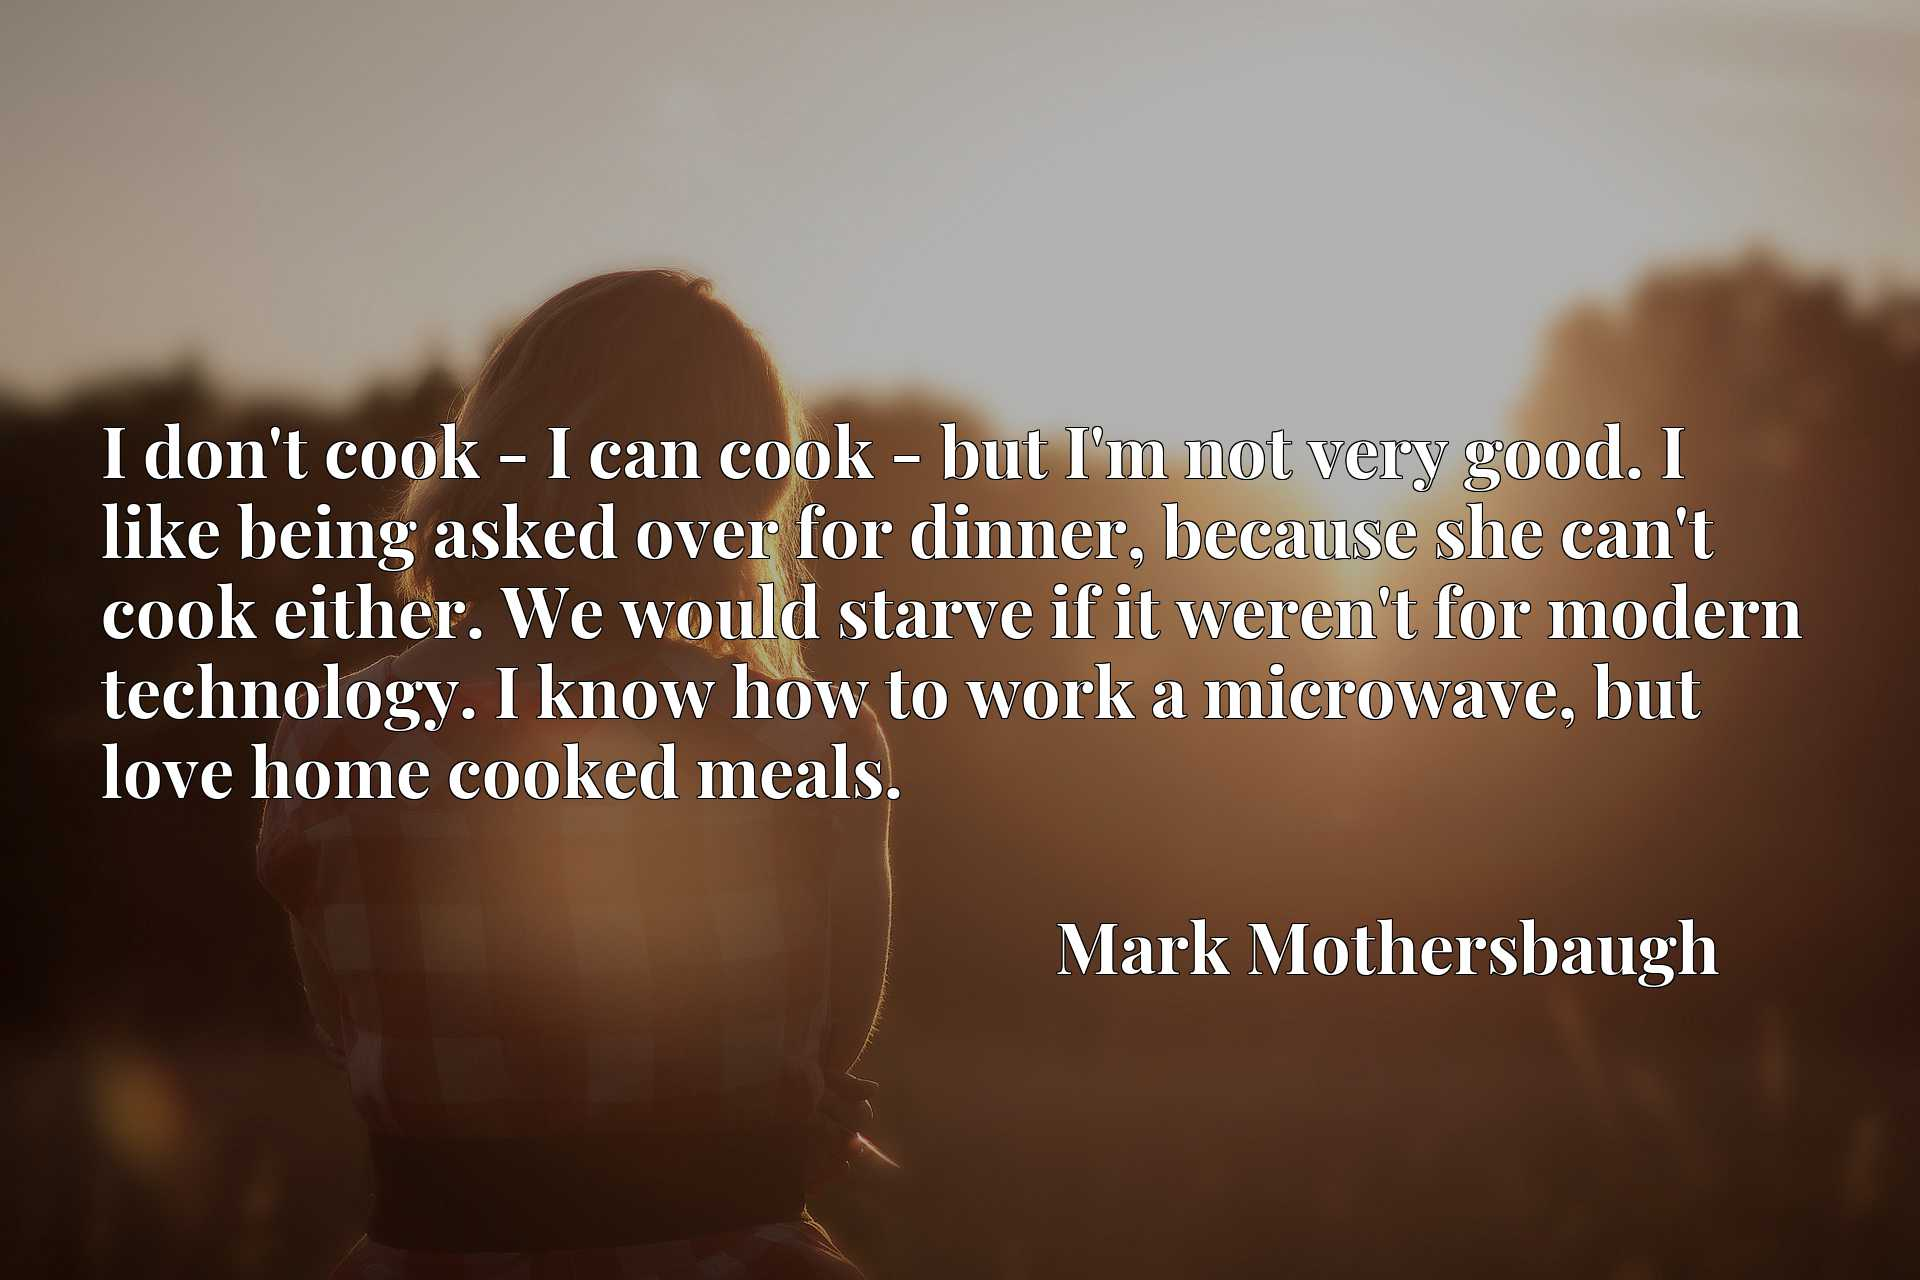 I don't cook - I can cook - but I'm not very good. I like being asked over for dinner, because she can't cook either. We would starve if it weren't for modern technology. I know how to work a microwave, but love home cooked meals.